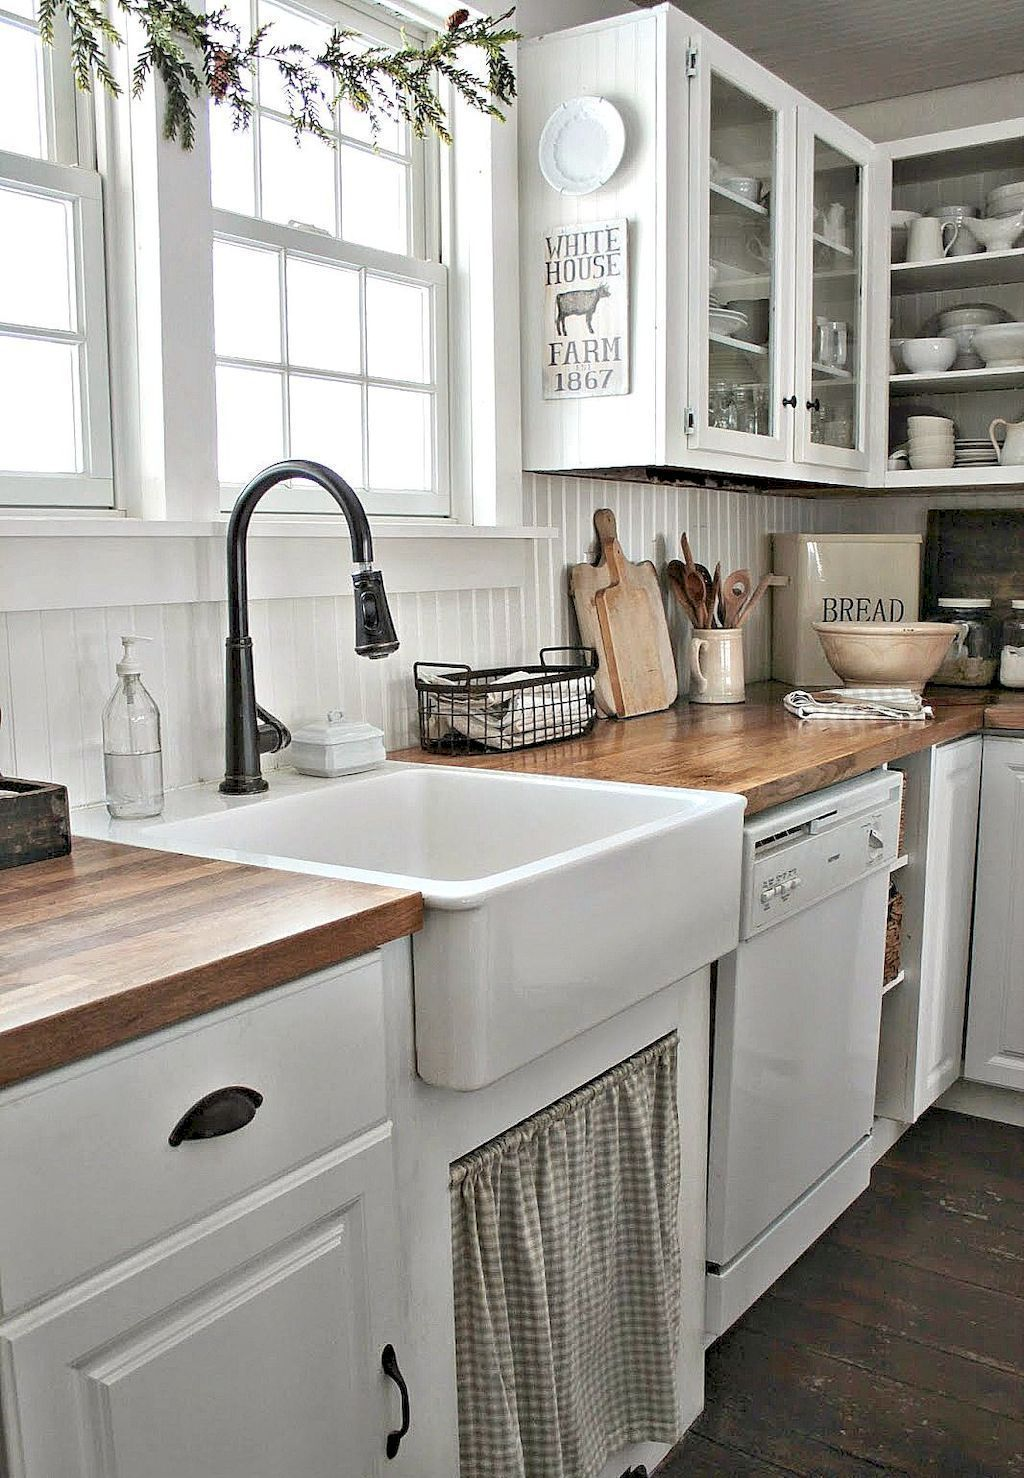 Modern kitchen sinks are not just about functions but also looks various kitchen sink ideas by contemporary designers not only blend into the designs but